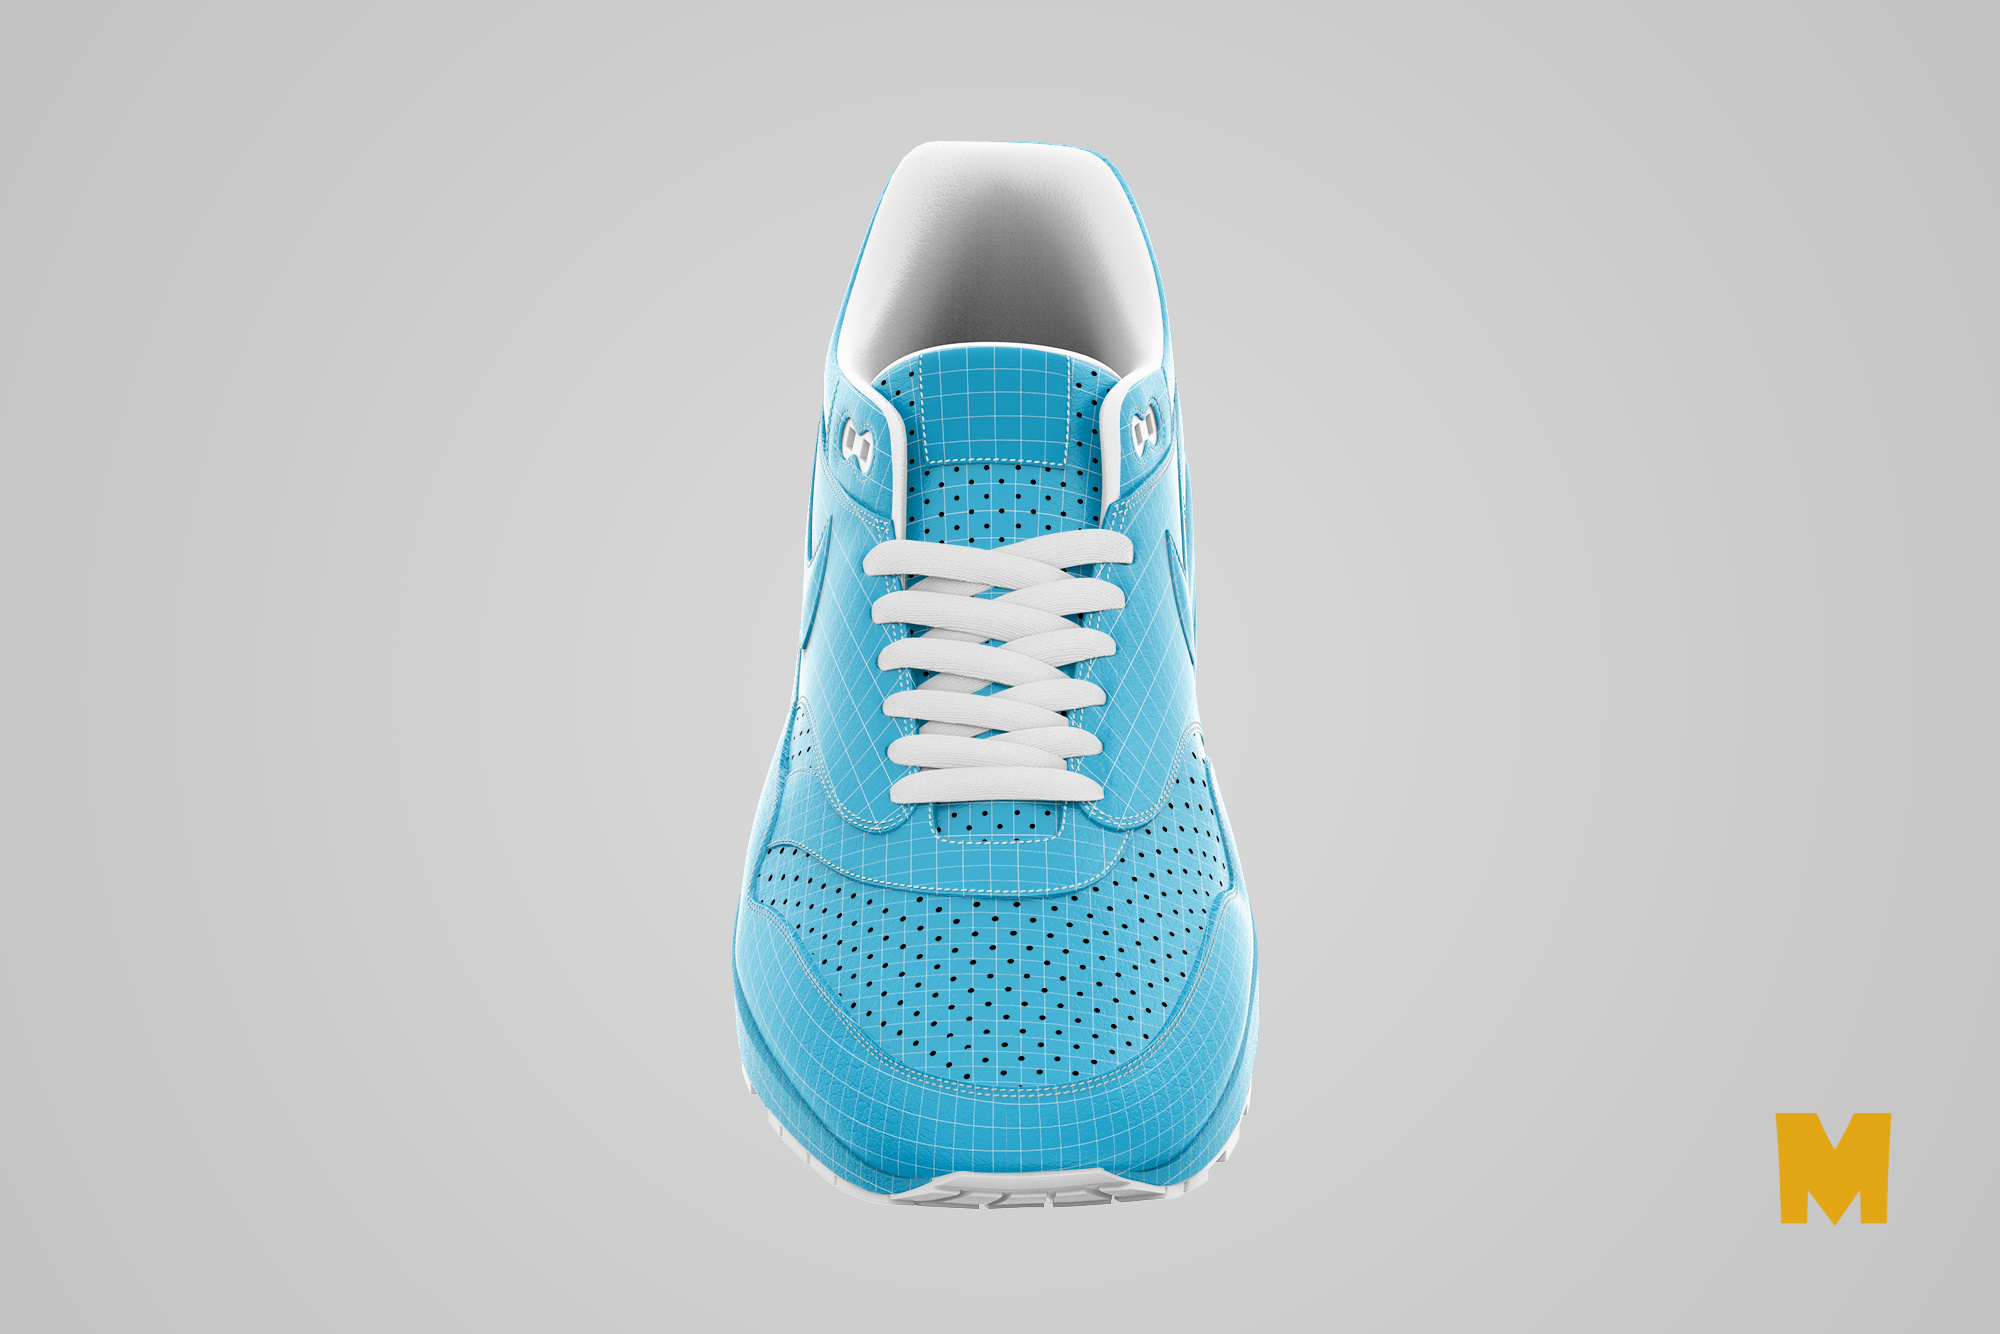 Amazing Shoes Mockups